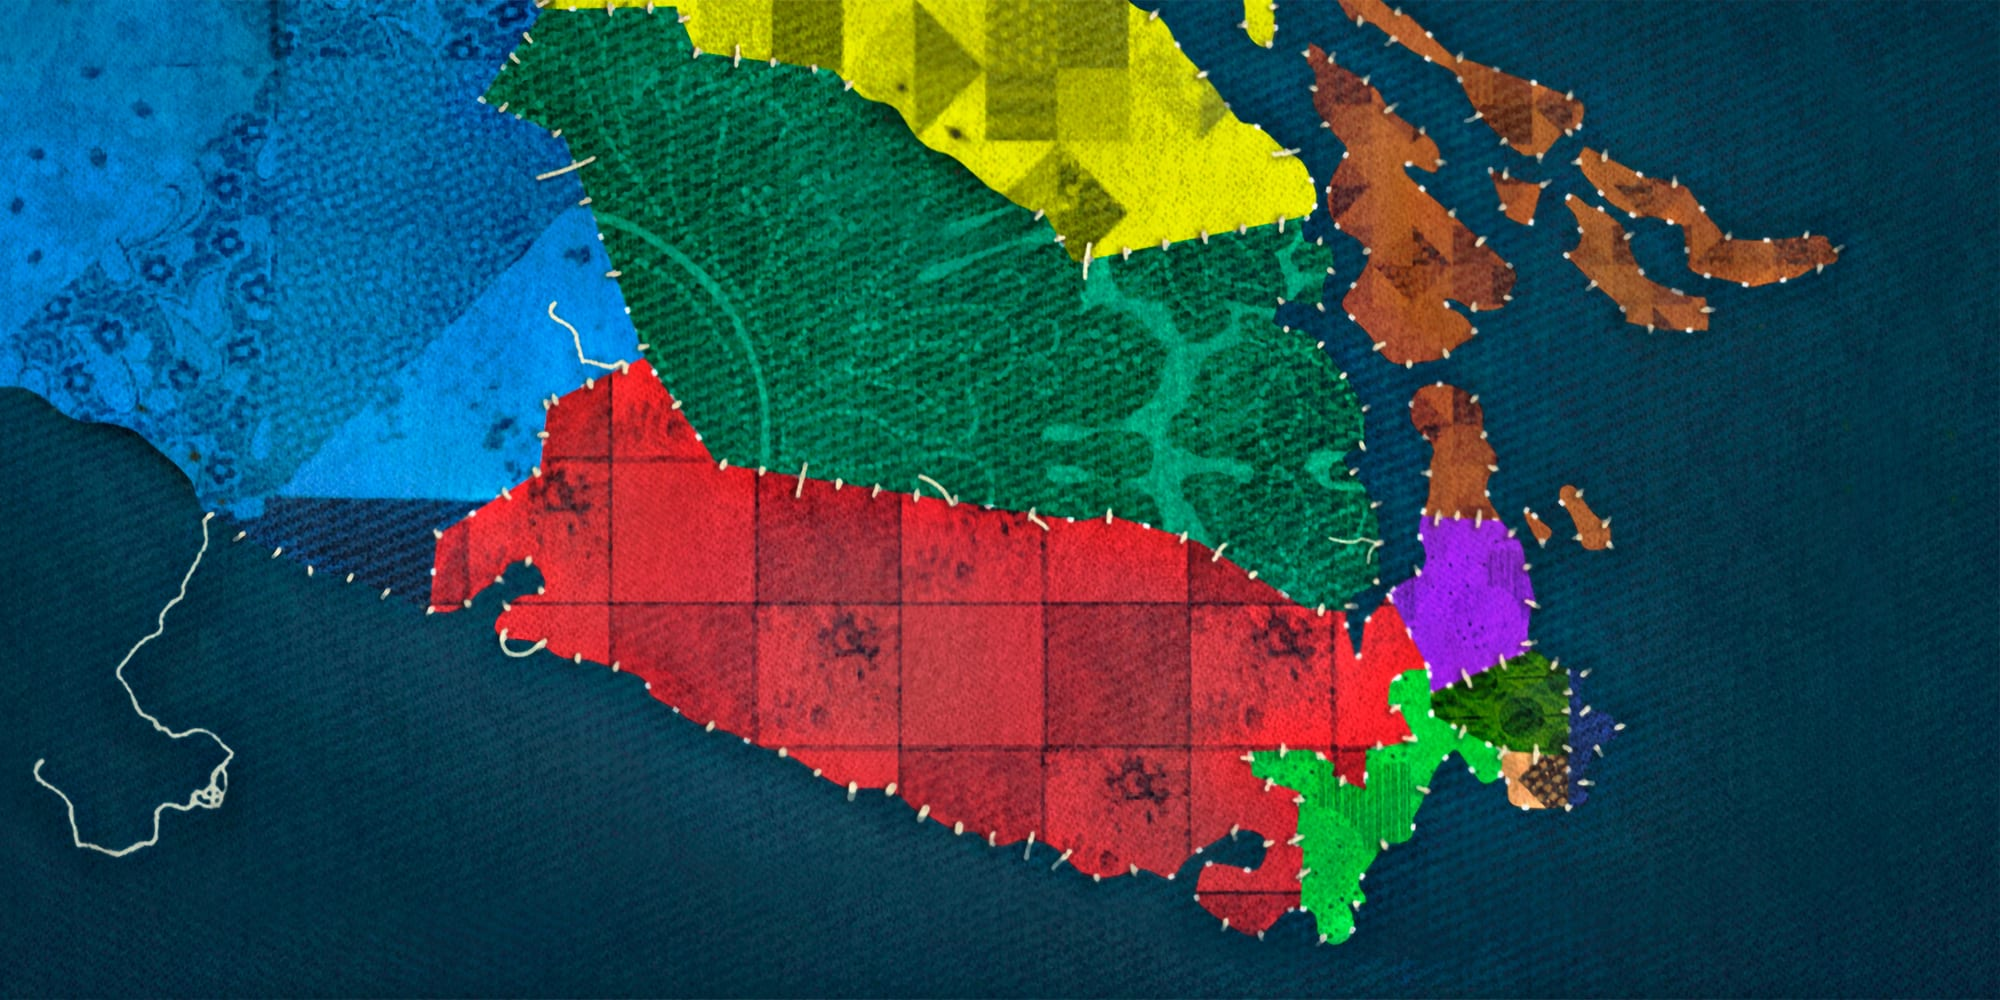 Victoria's amalgamation frustration: why there are still 13 municipalities in BC's capital